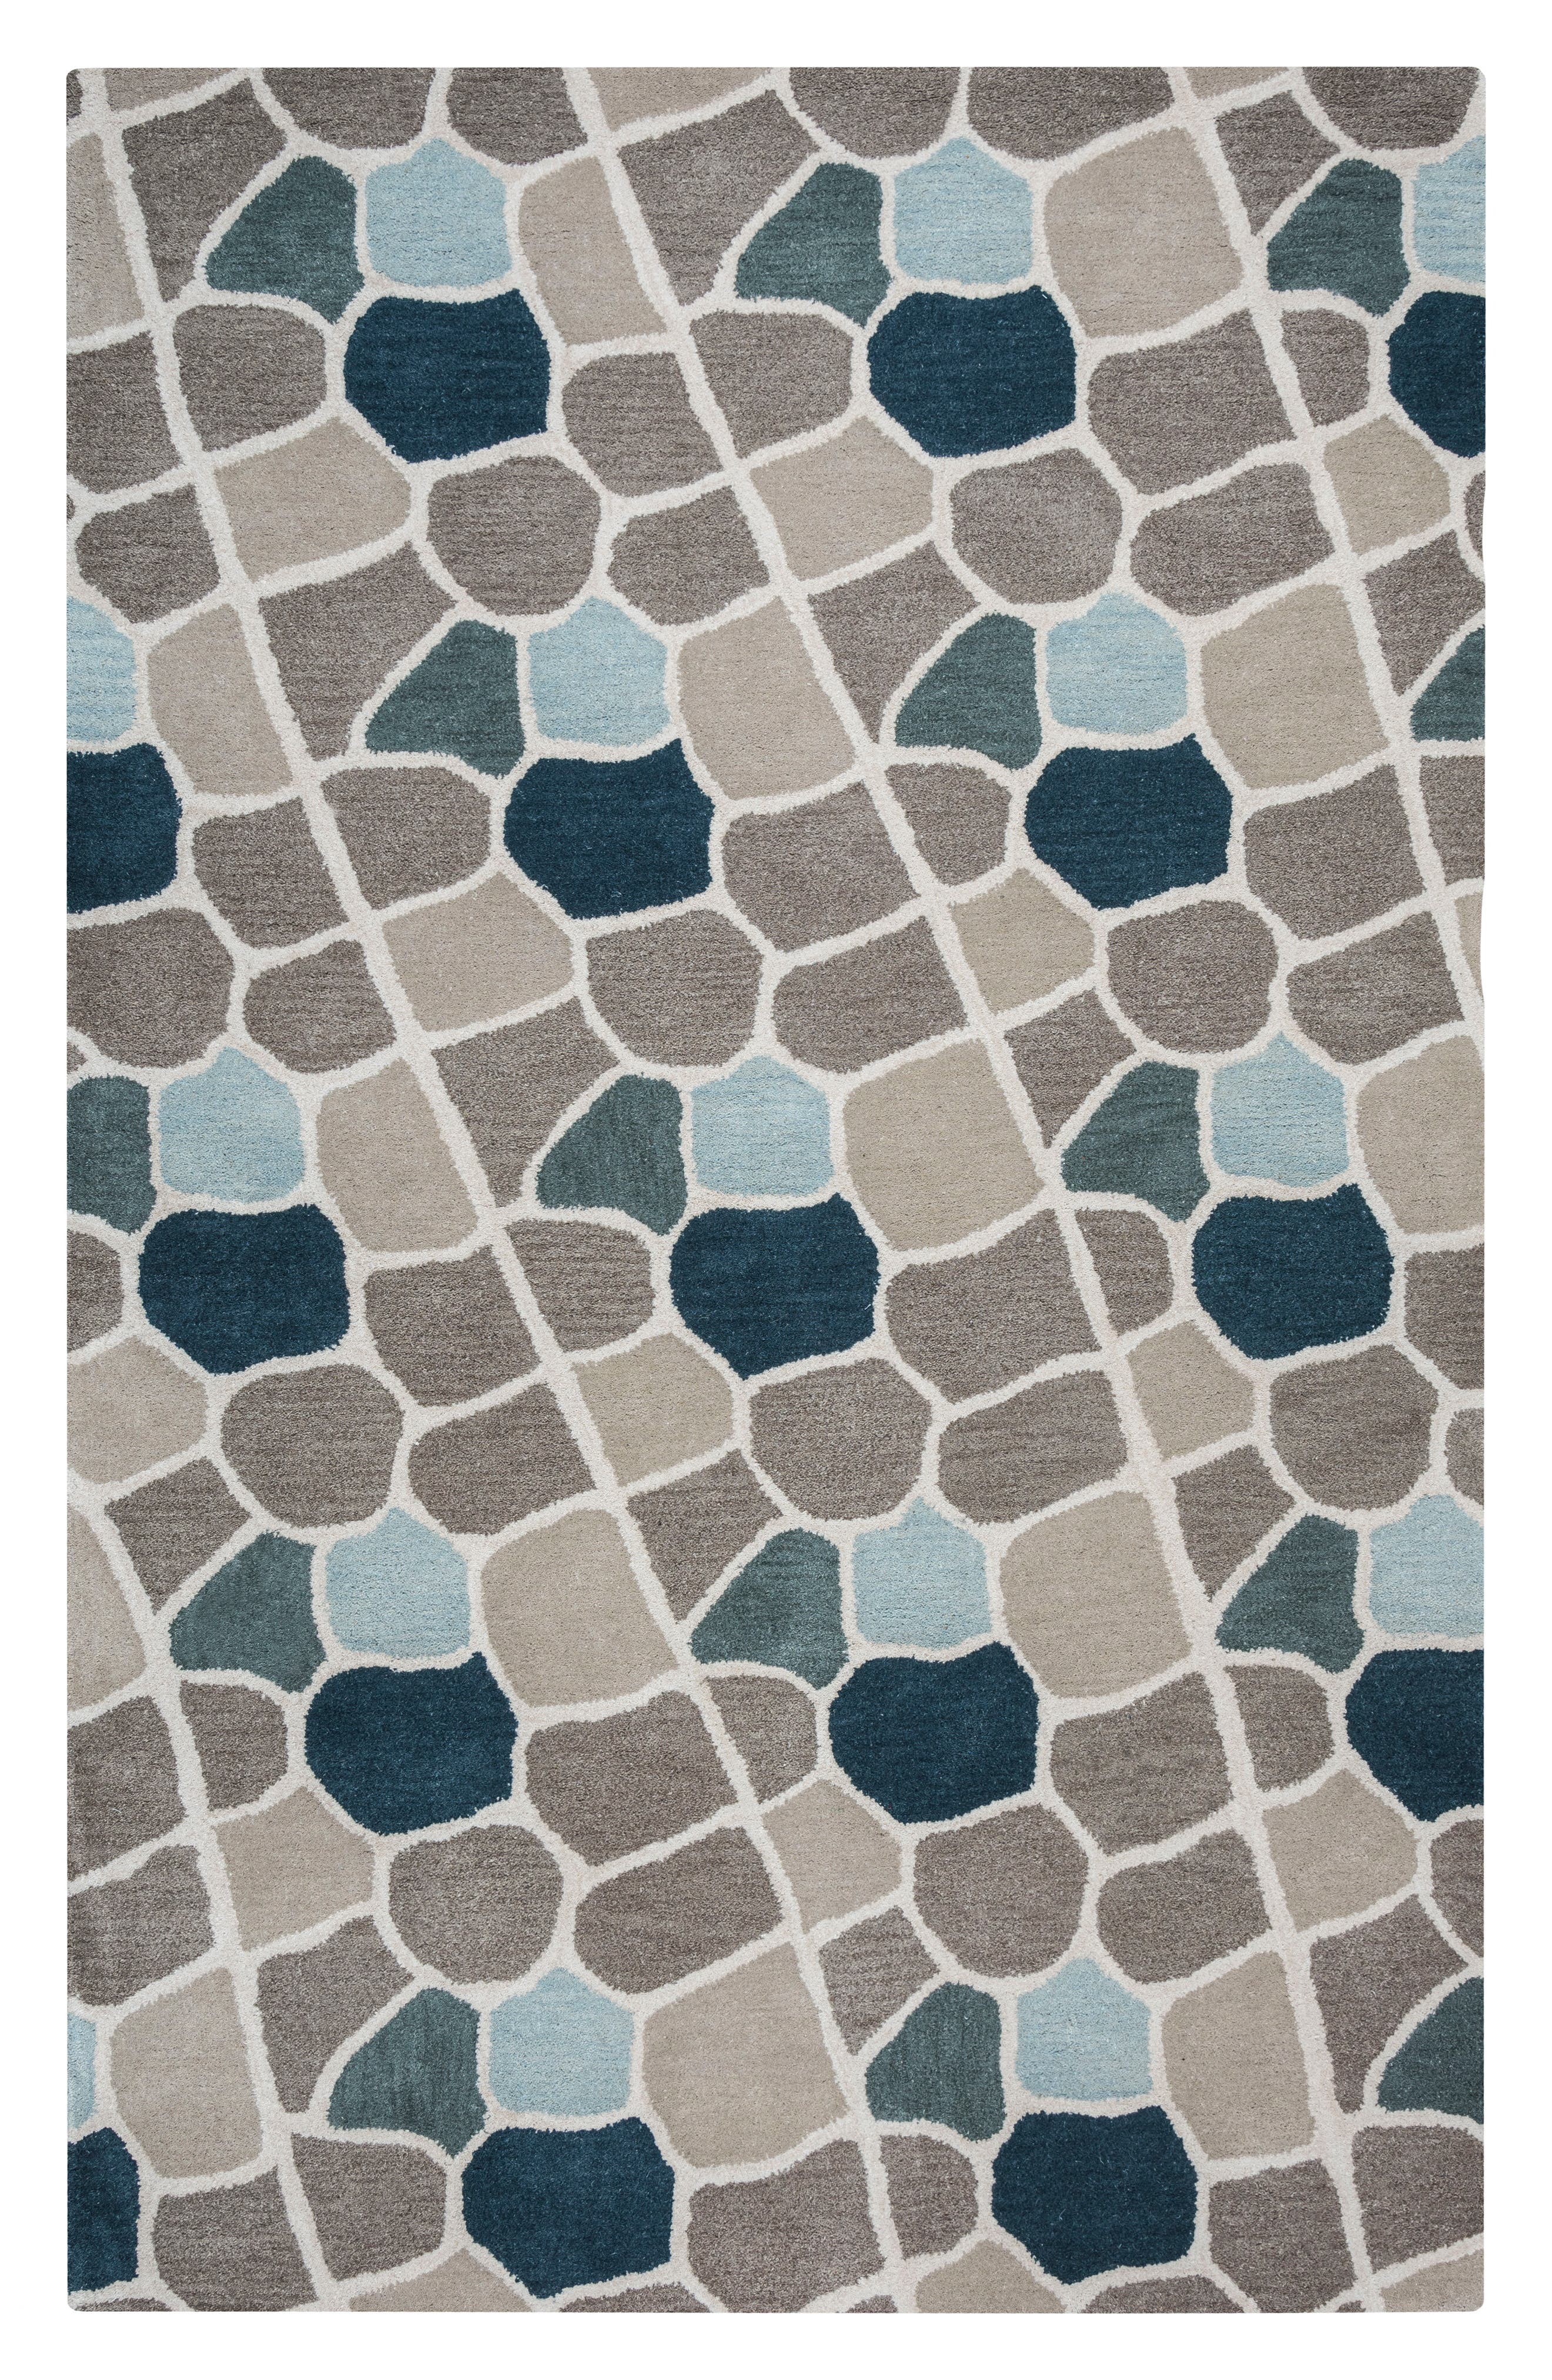 Cobble Geo Hand Tufted Wool Area Rug,                         Main,                         color, 020